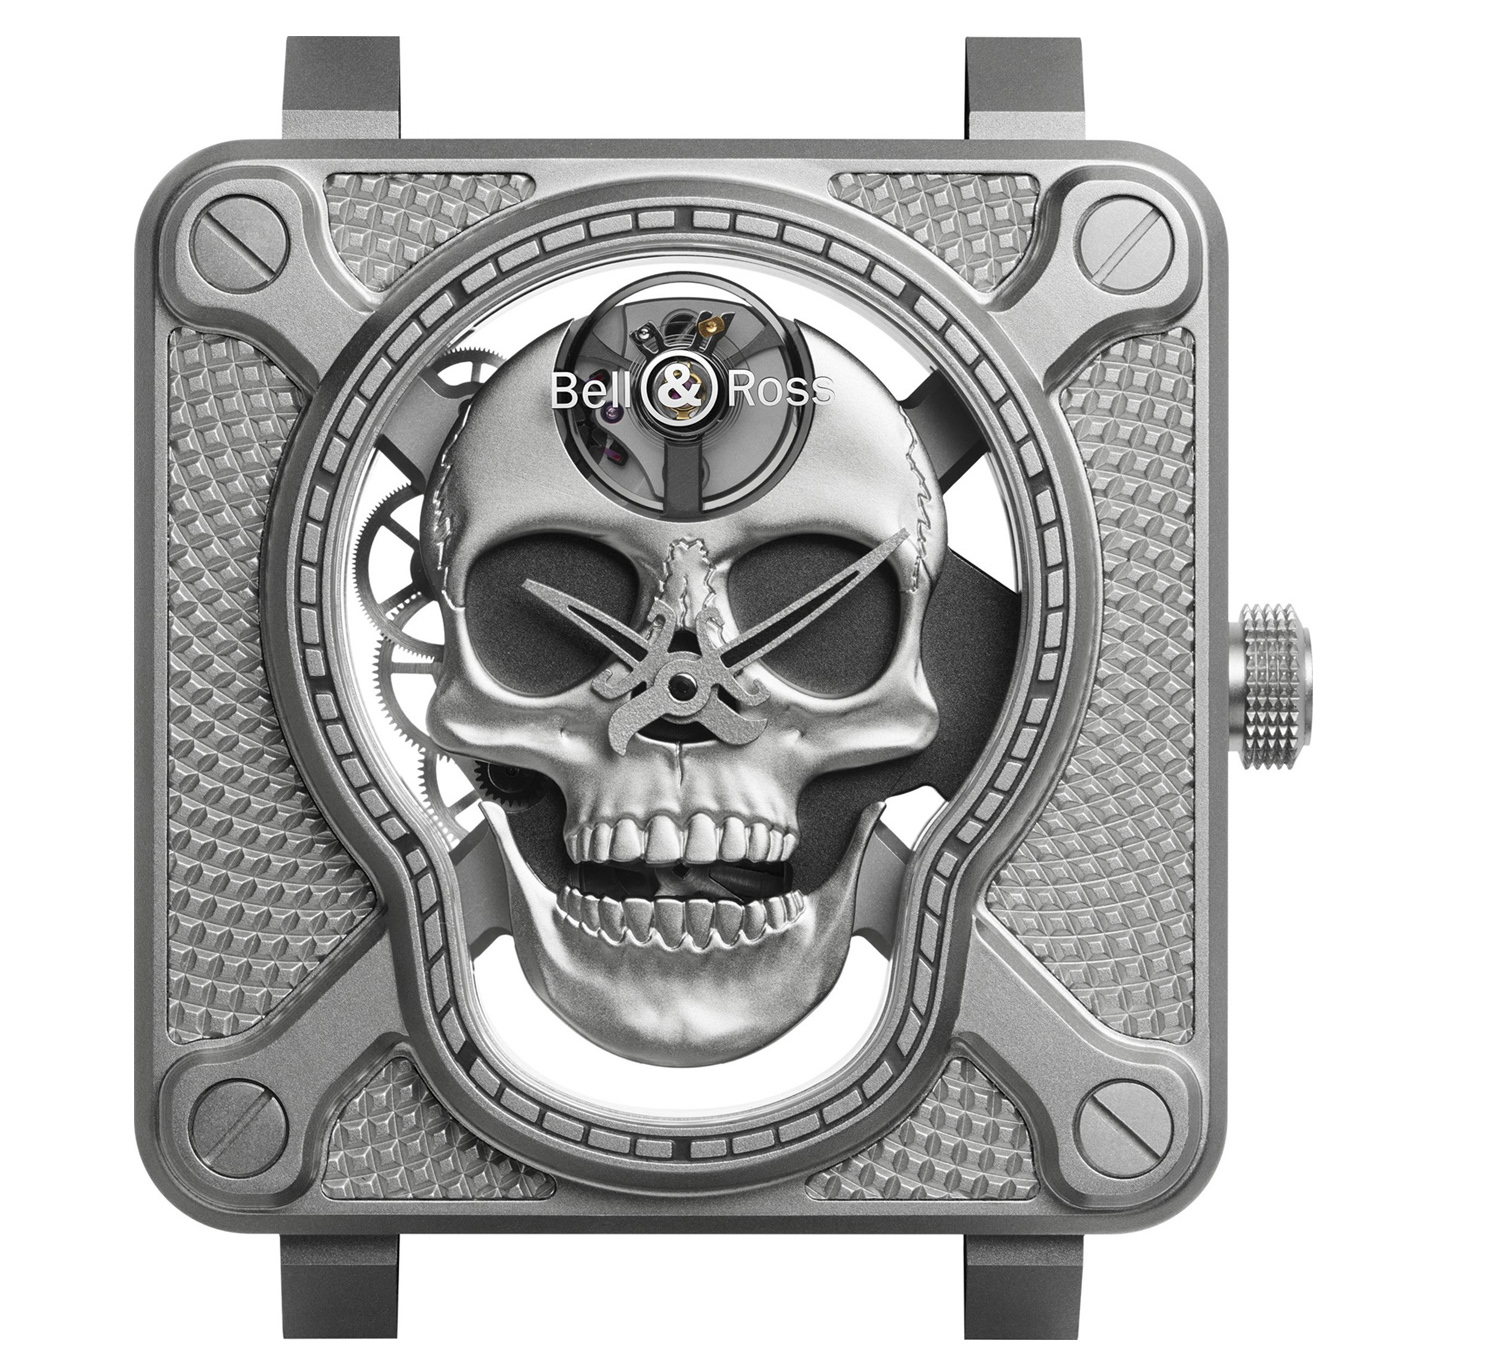 Bell & Ross BR 01 Laughing Skull Face